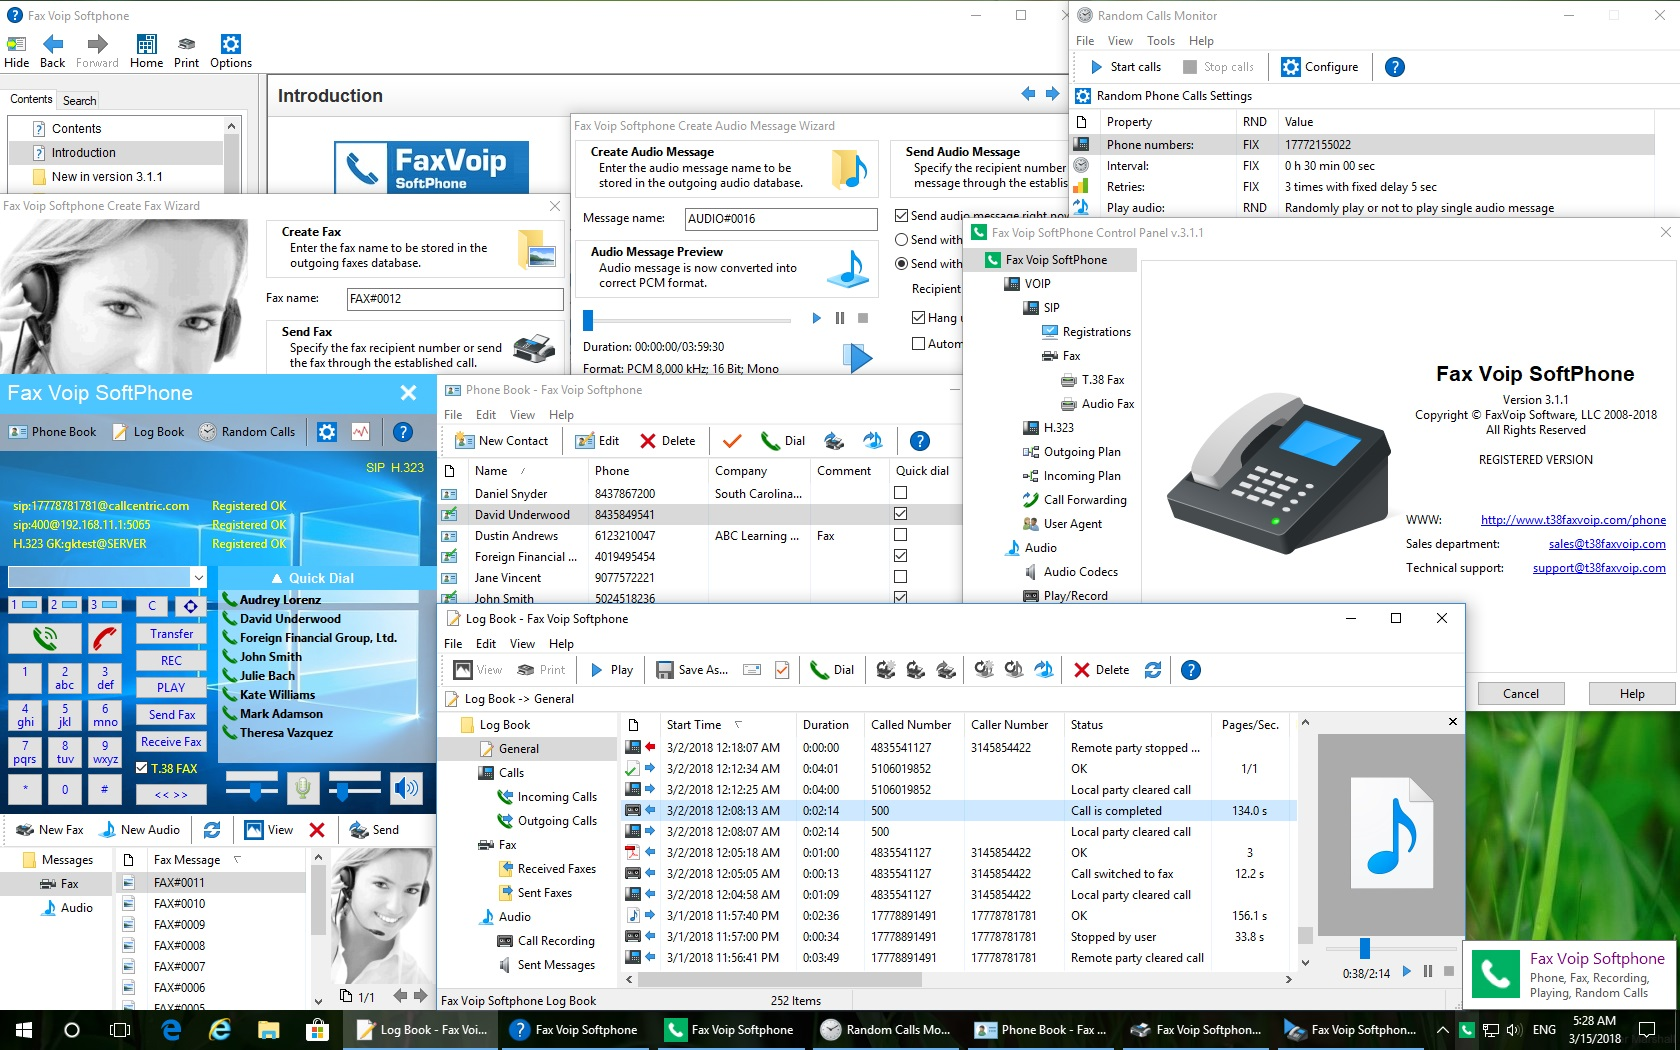 Click to view Fax Voip Softphone 2.3.1 screenshot